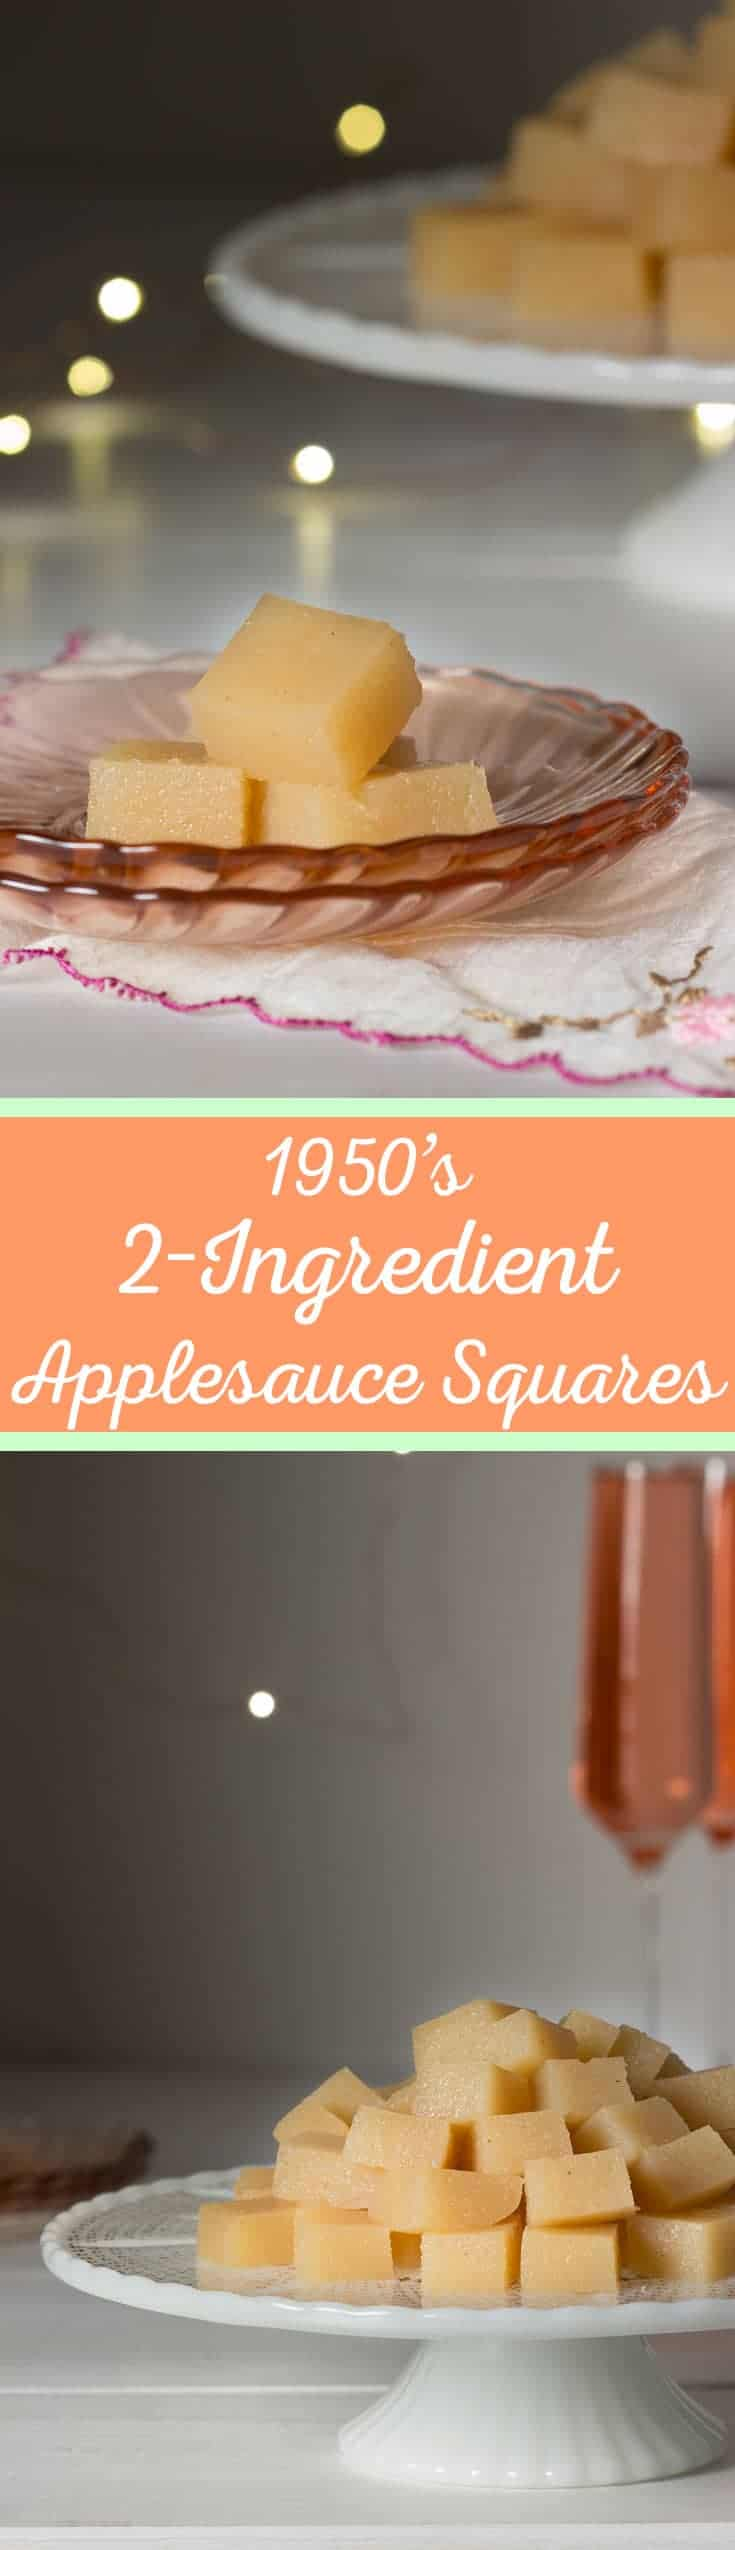 Two-Ingredient Applesauce Squares - These delightful bites are super easy to make and perfect for kids - cupofzest.com